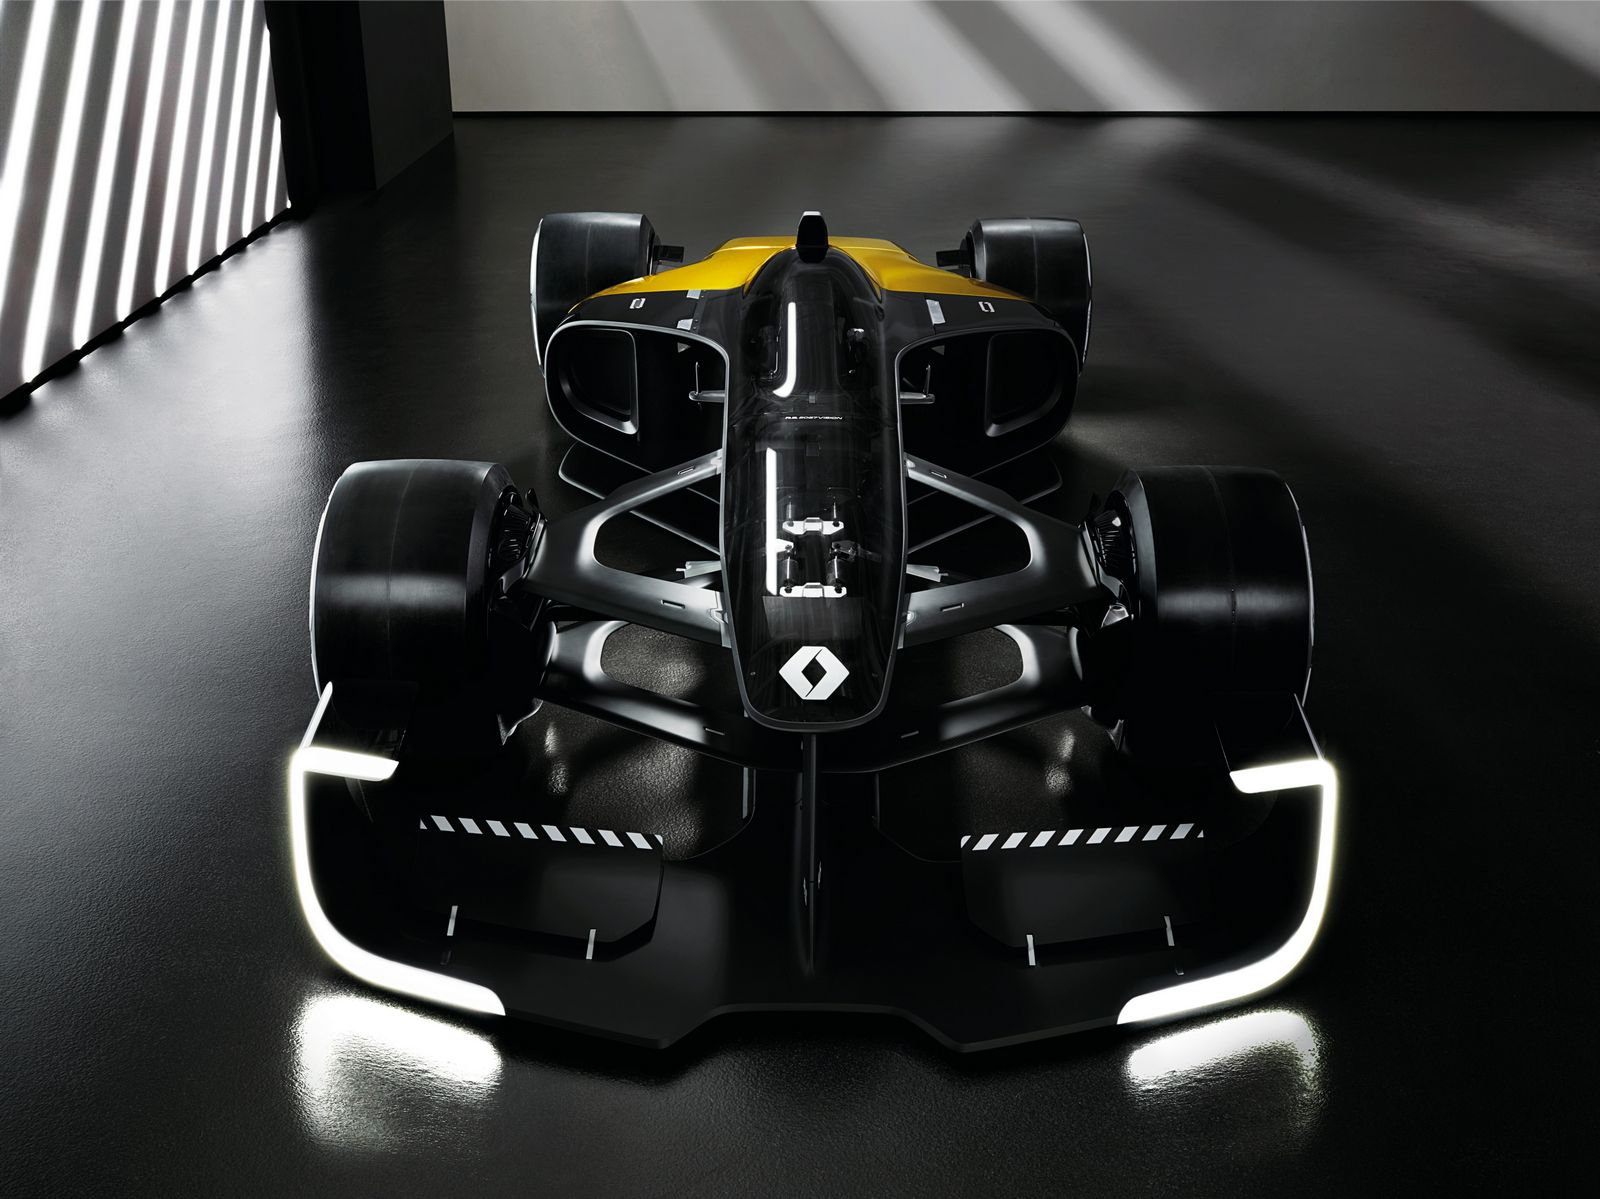 Renault RS 2027 Vision concept (1)